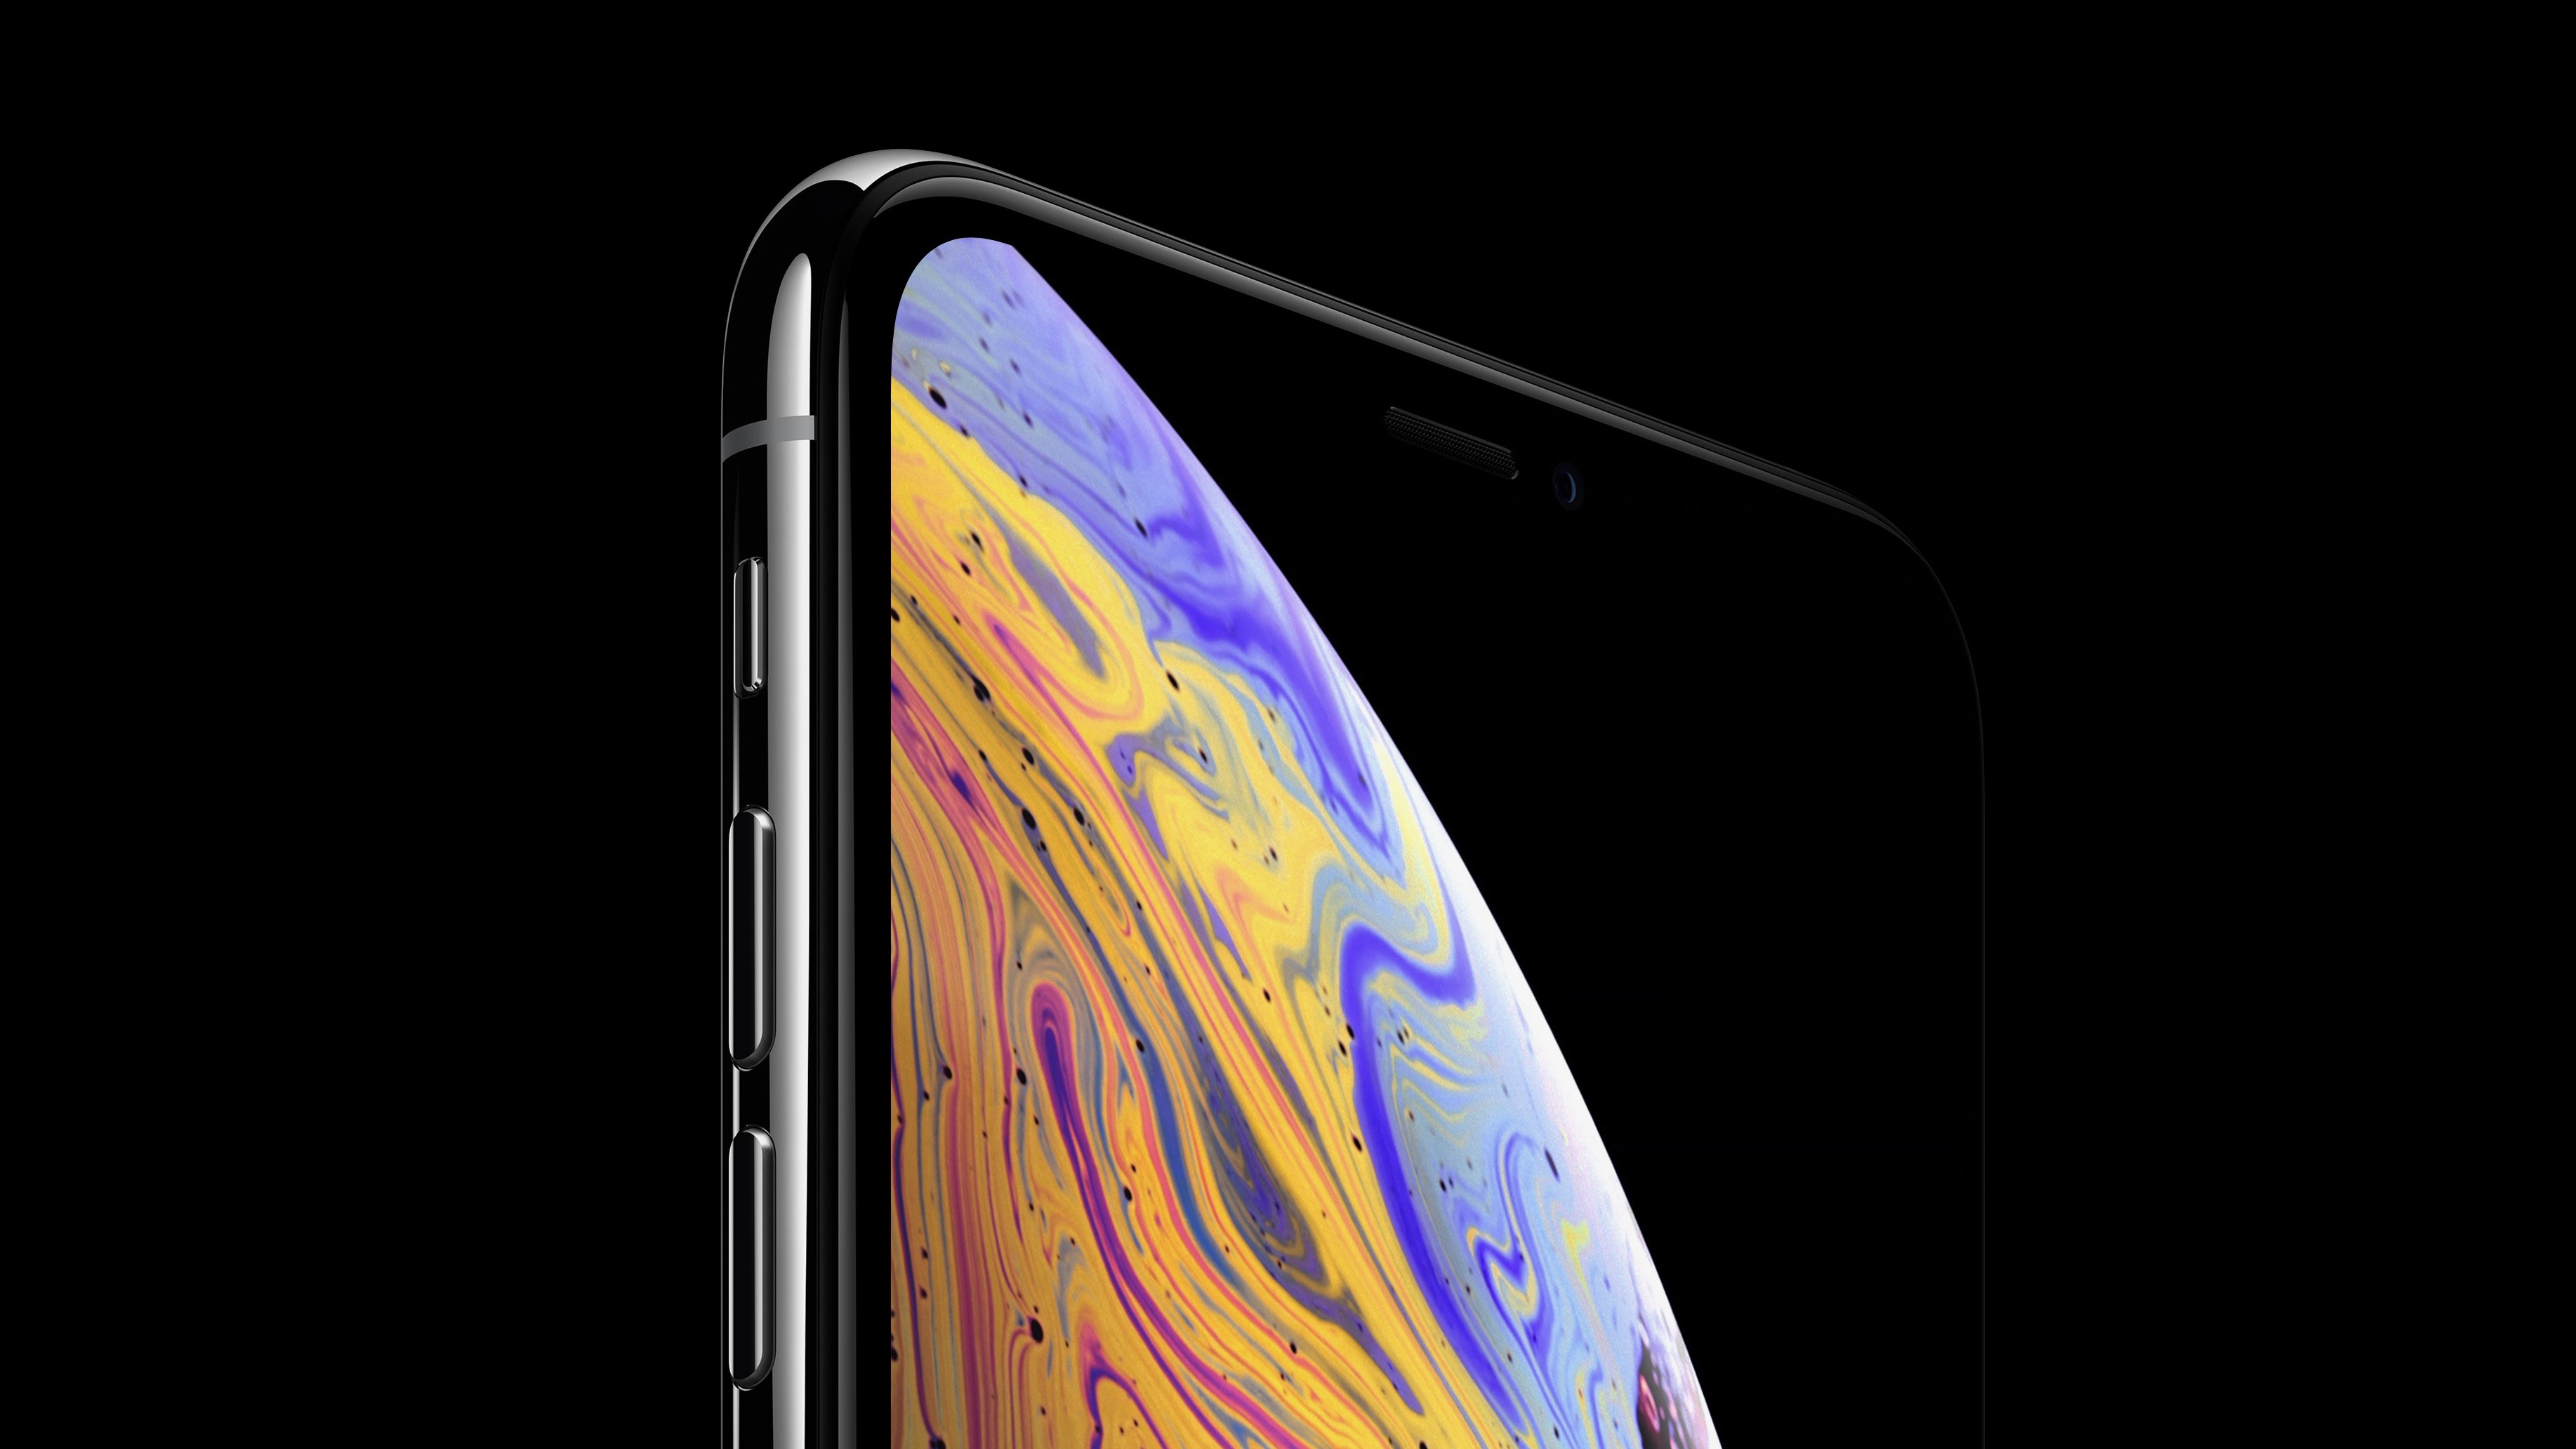 Download The New Iphone Xs And Iphone Xs Max Wallpapers